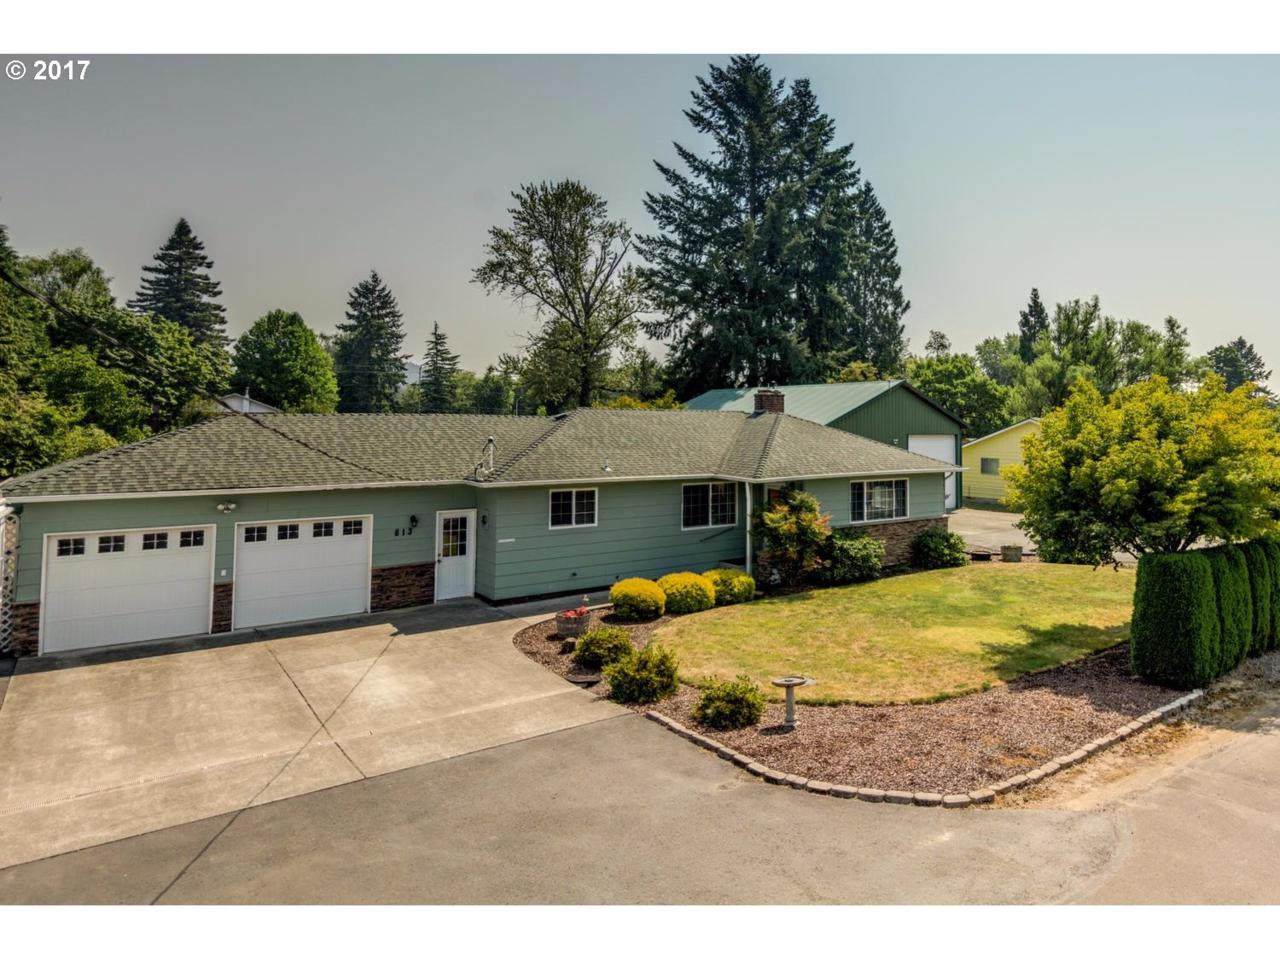 813 NW 2ND Ave, Battle Ground, WA 98604 (MLS #17377769) :: The Dale Chumbley Group